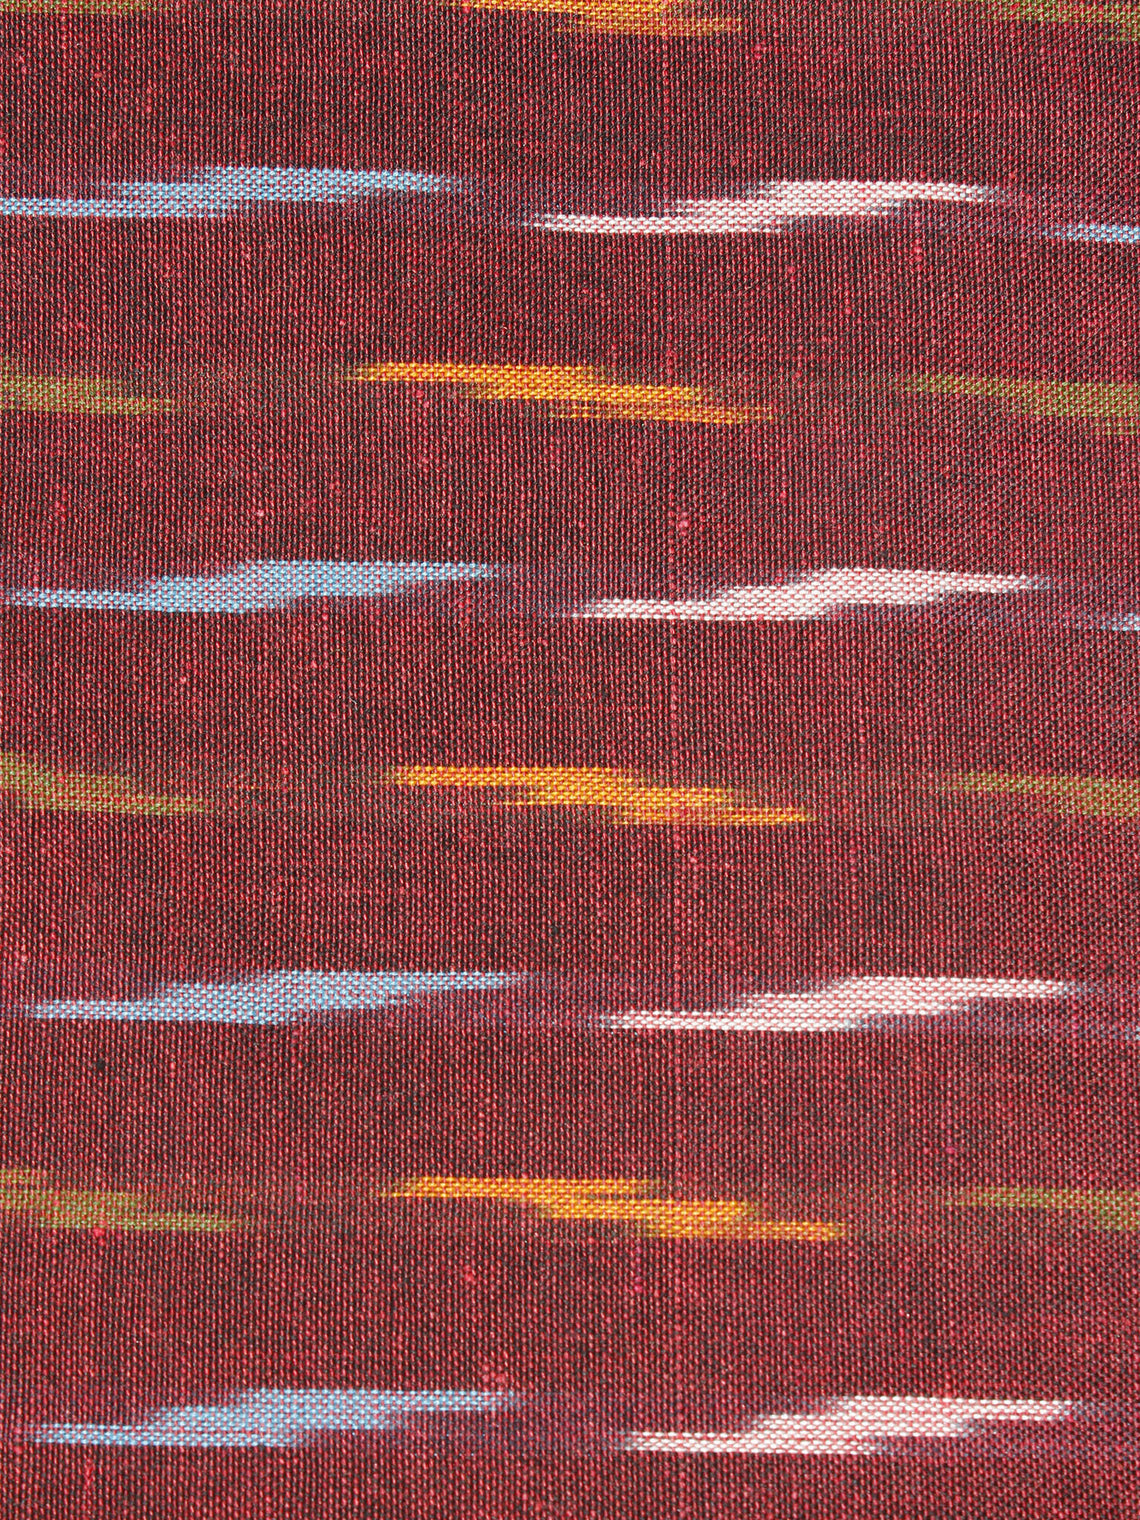 Maroon Multi Color Pochampally Hand Weaved Ikat Fabric Per Meter - F0916668